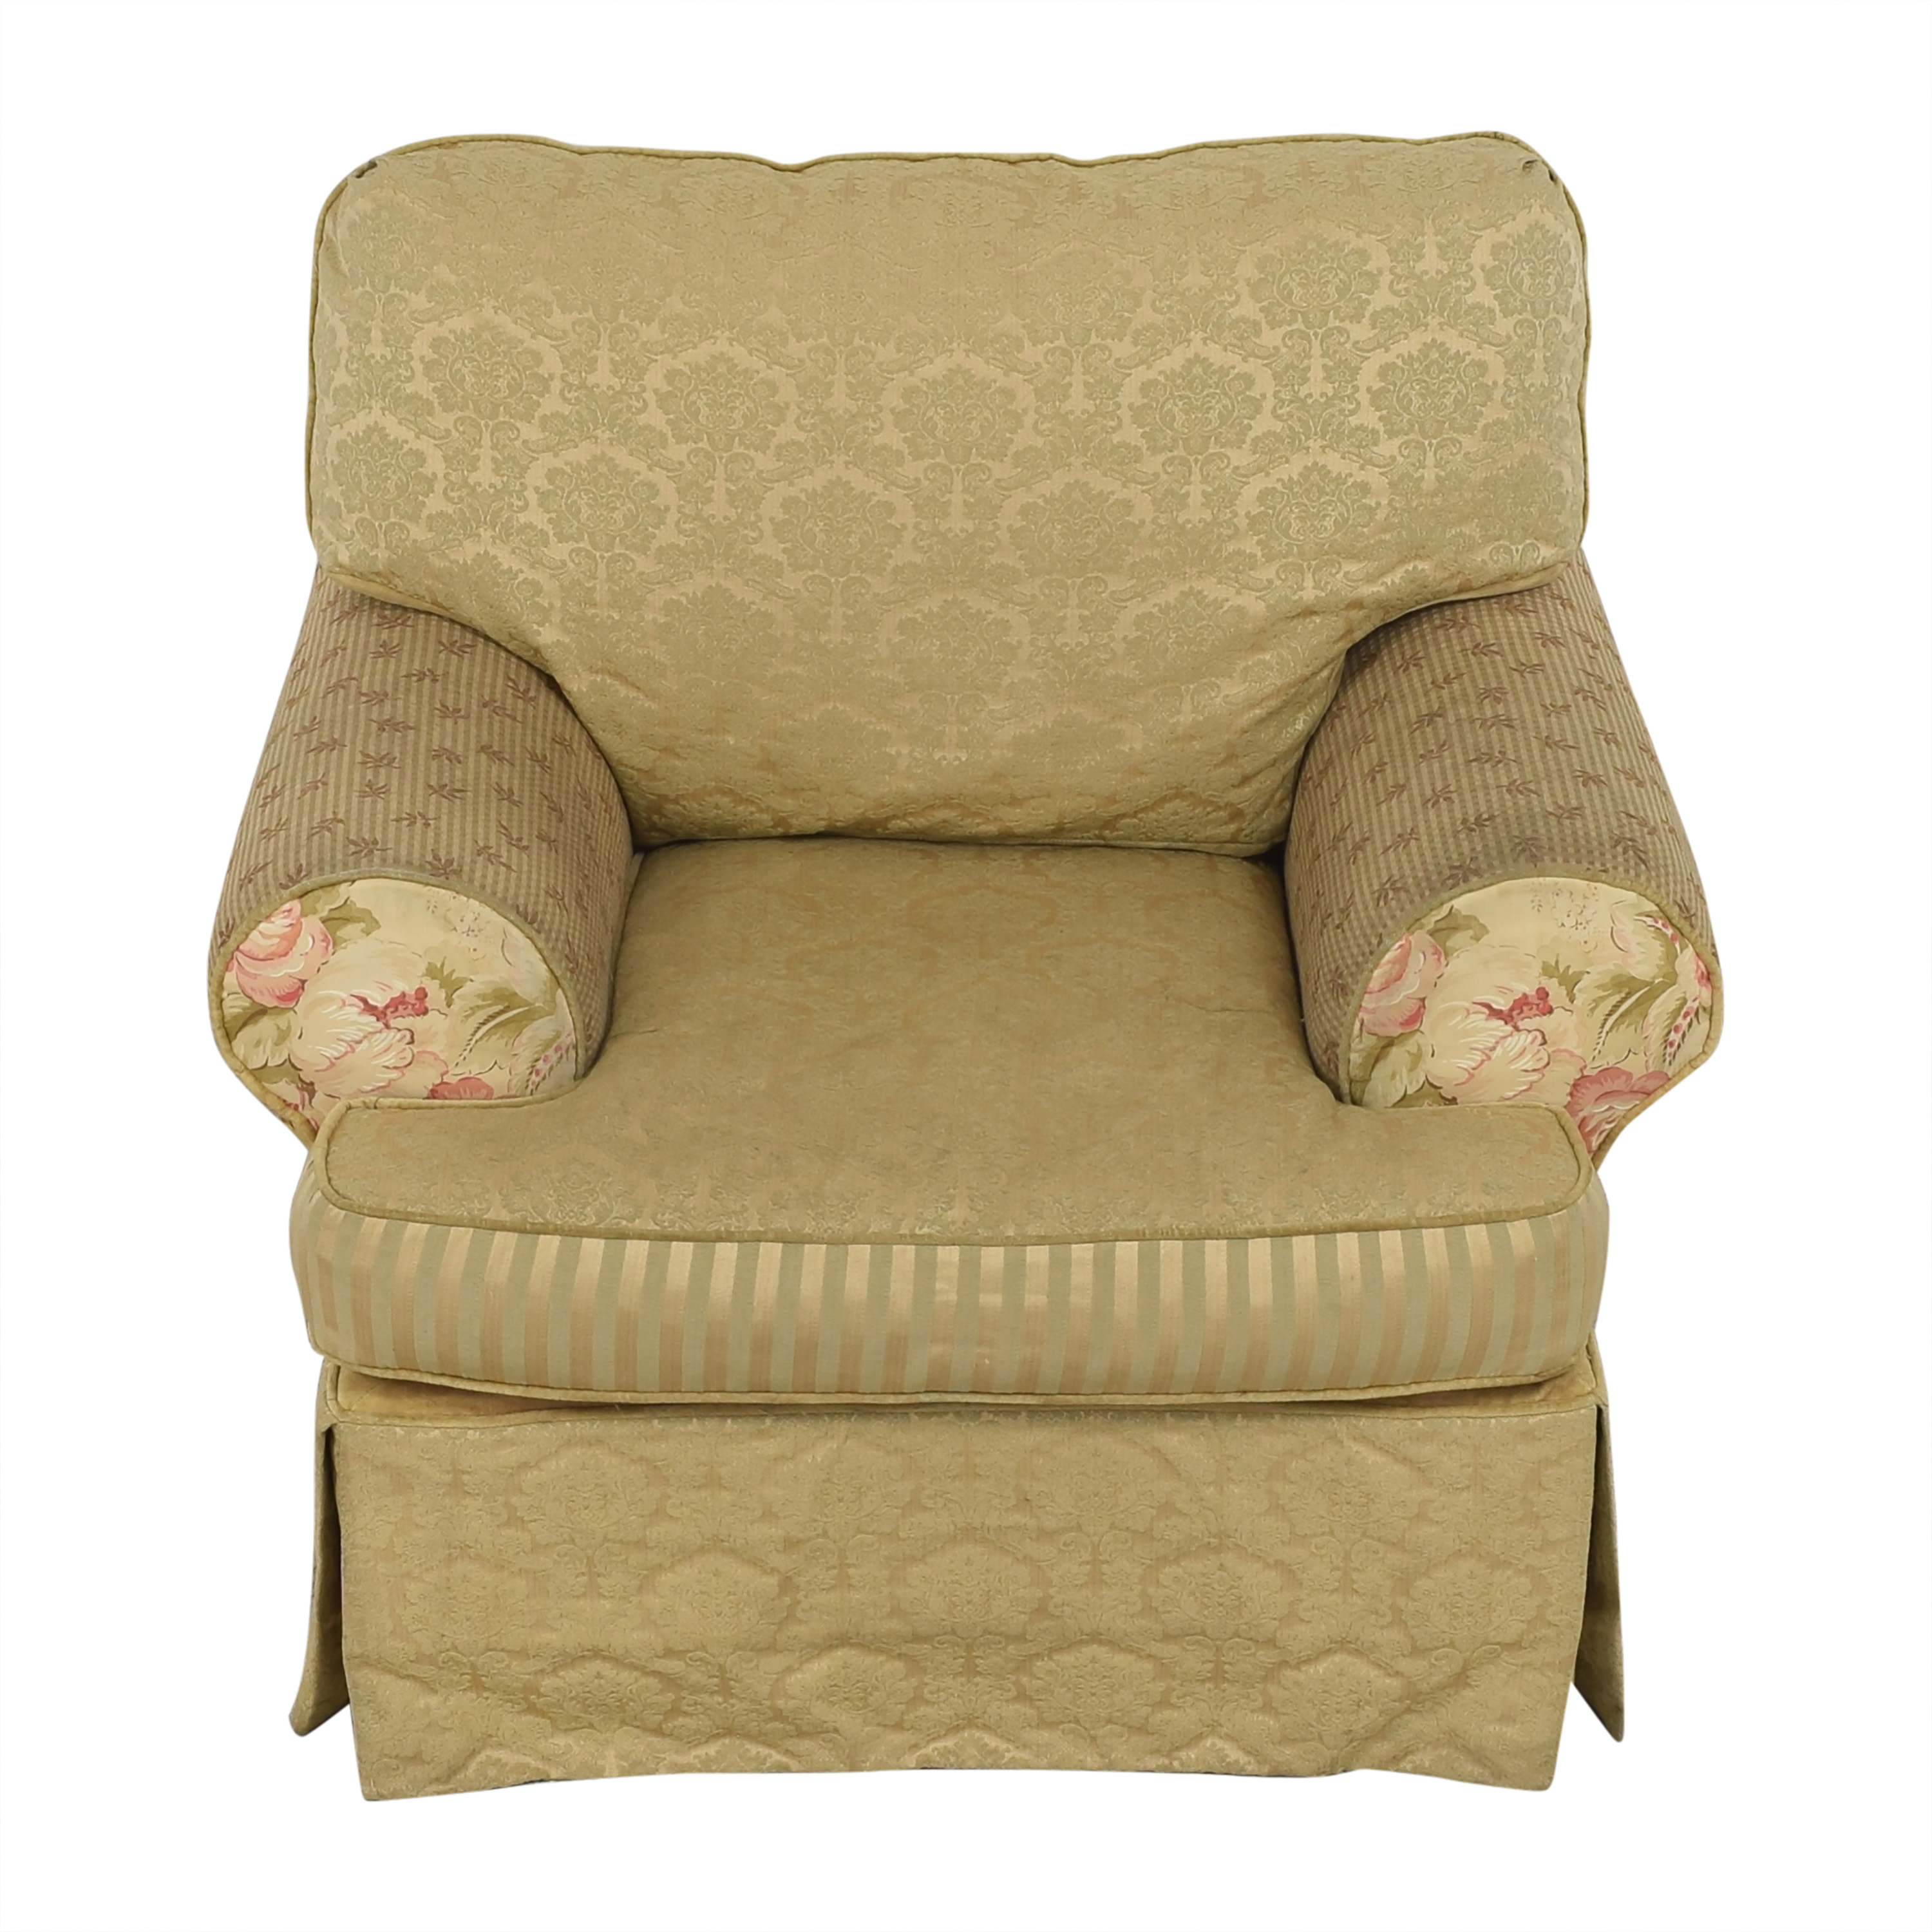 Alexvale Alexvale Floral Accent Chair dimensions